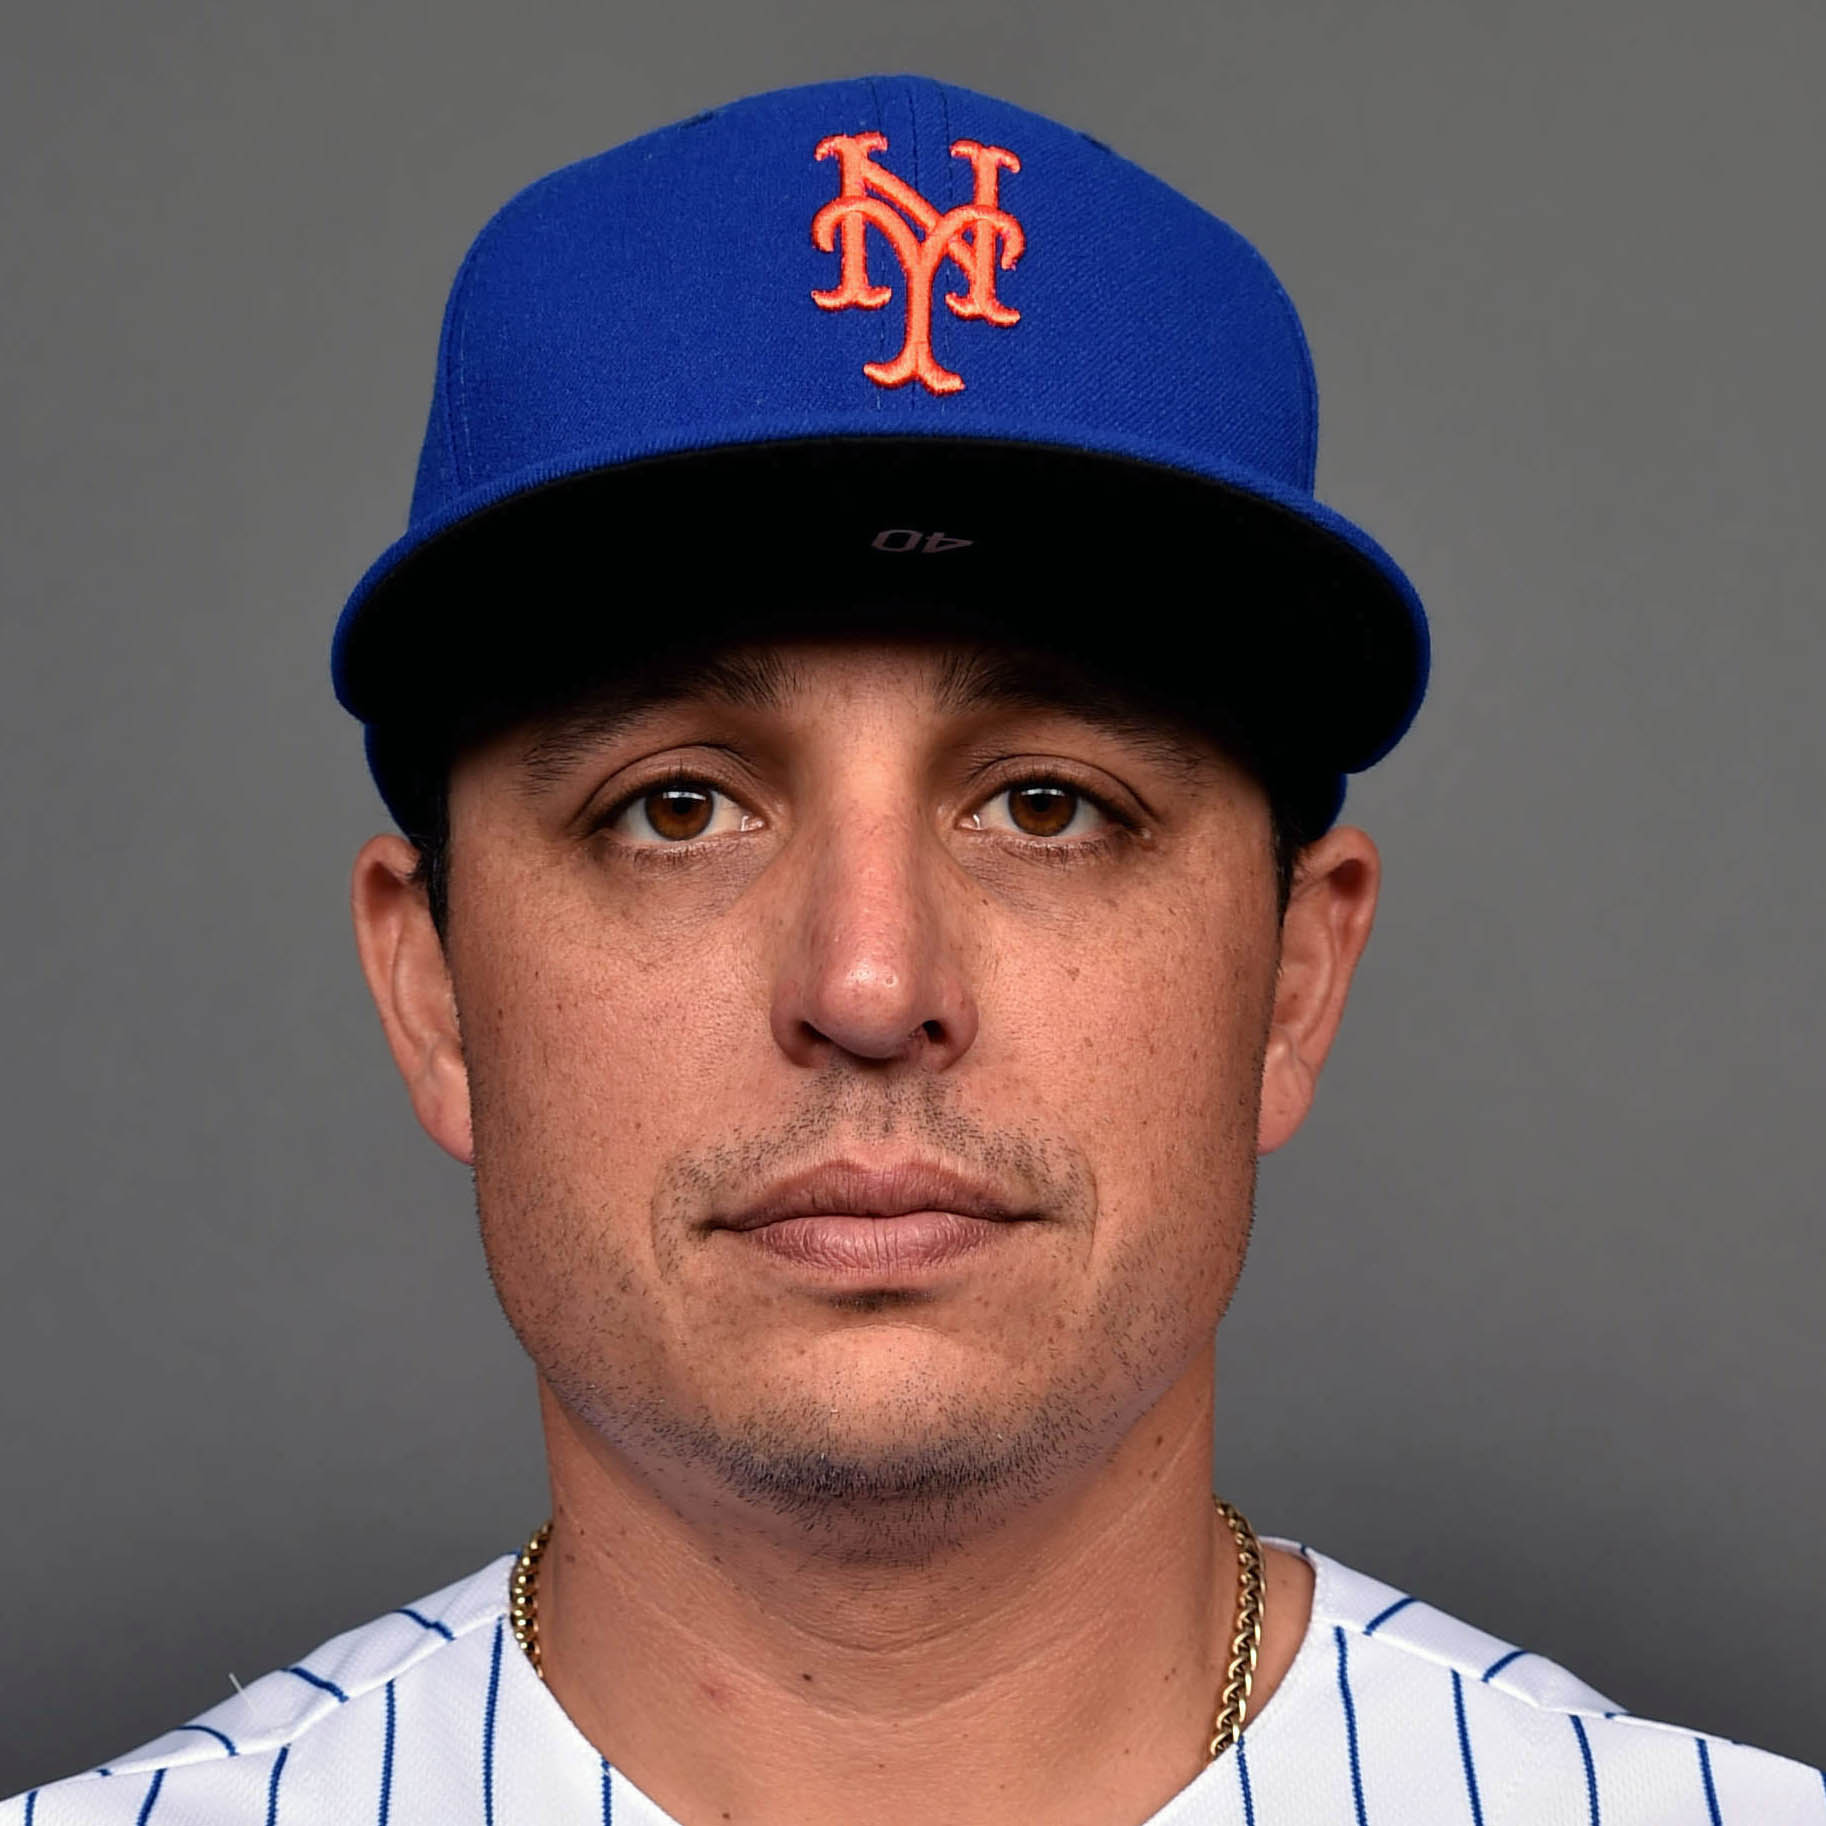 Jason Vargas (L) Headshot